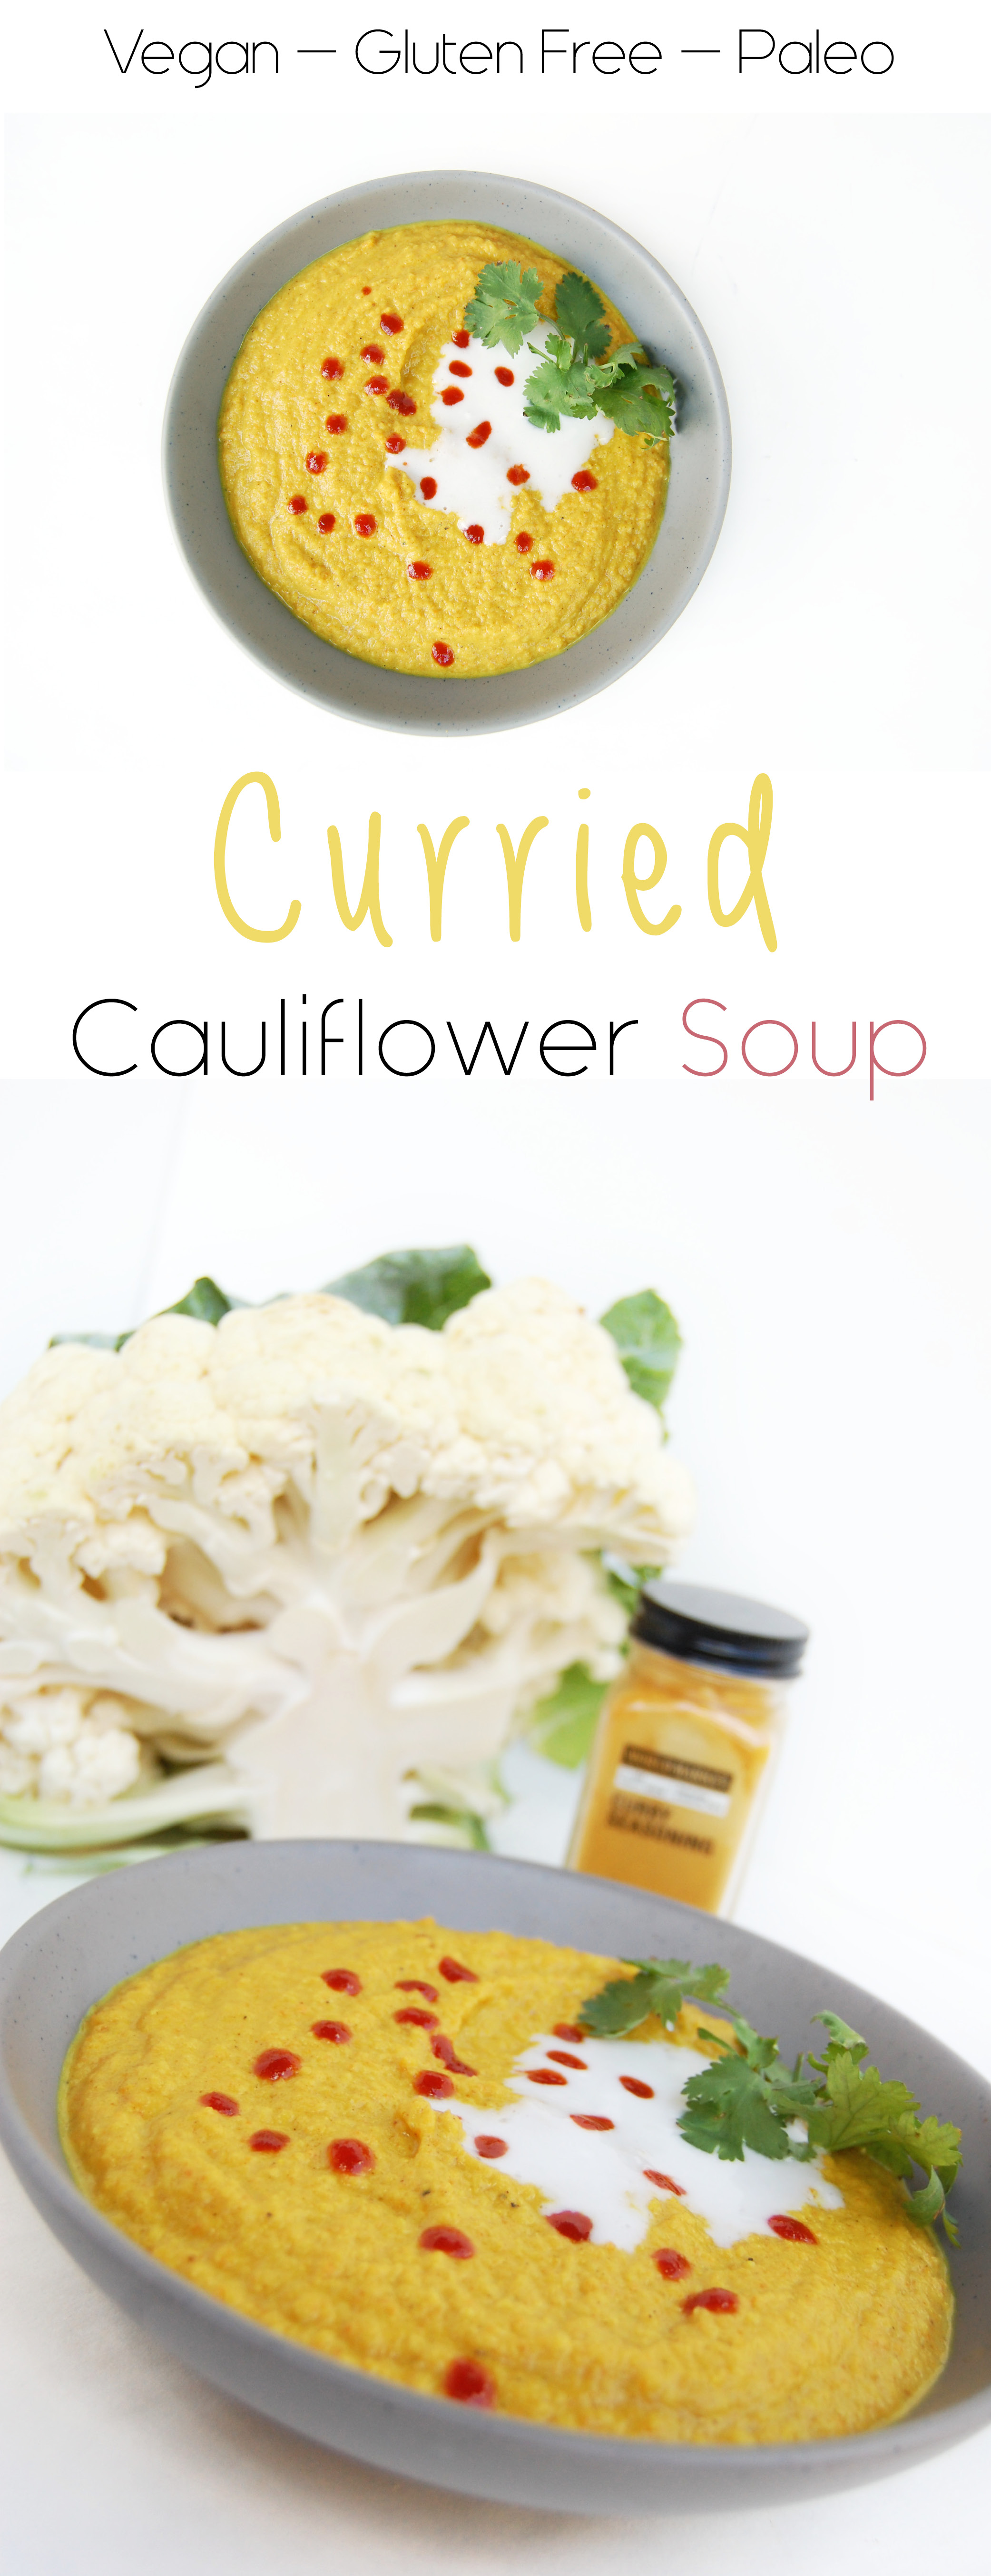 Curried Cauliflower Soup | AreYouKitchenMe.com